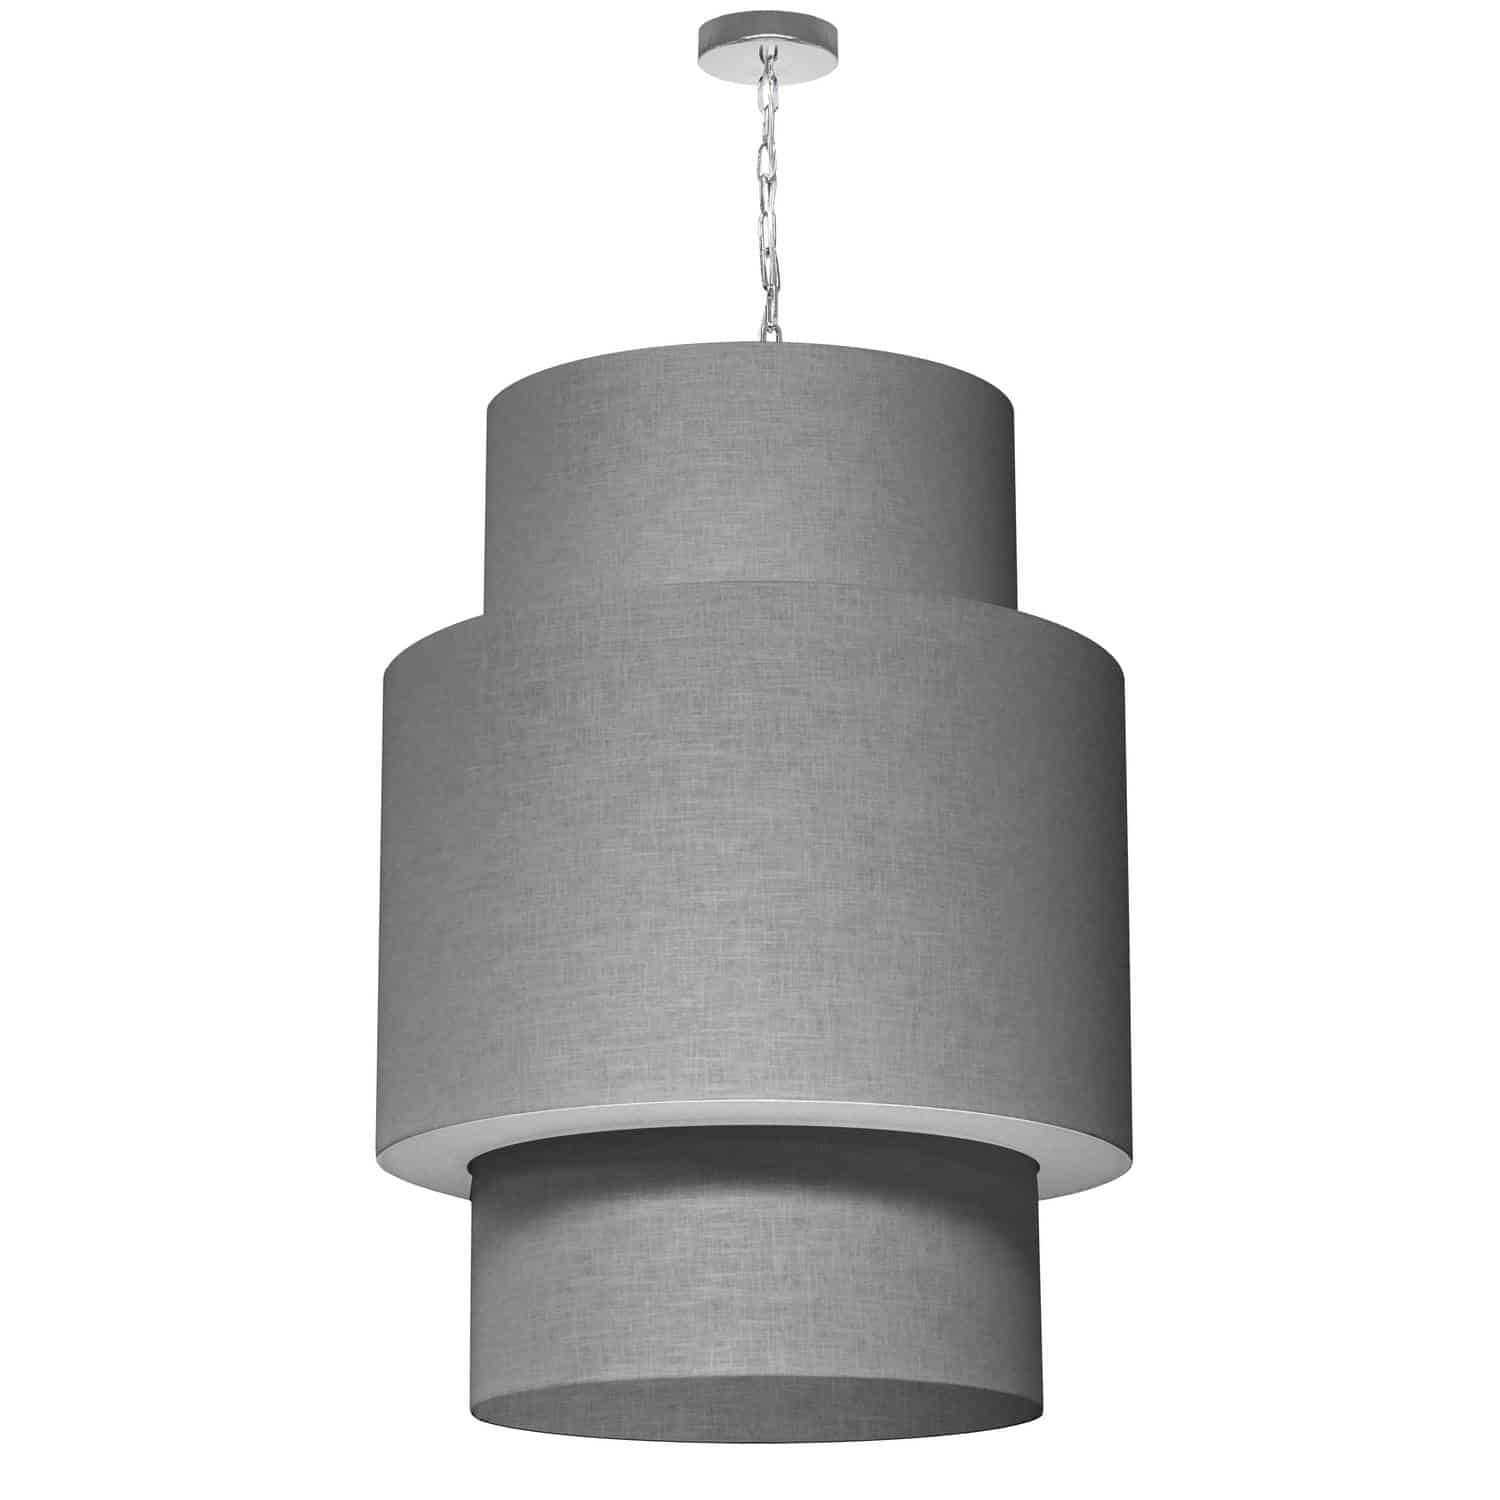 7 Light 3 Tiers Drum Linen Milano Grey, Acrylic Diffuser,Polished Chrome